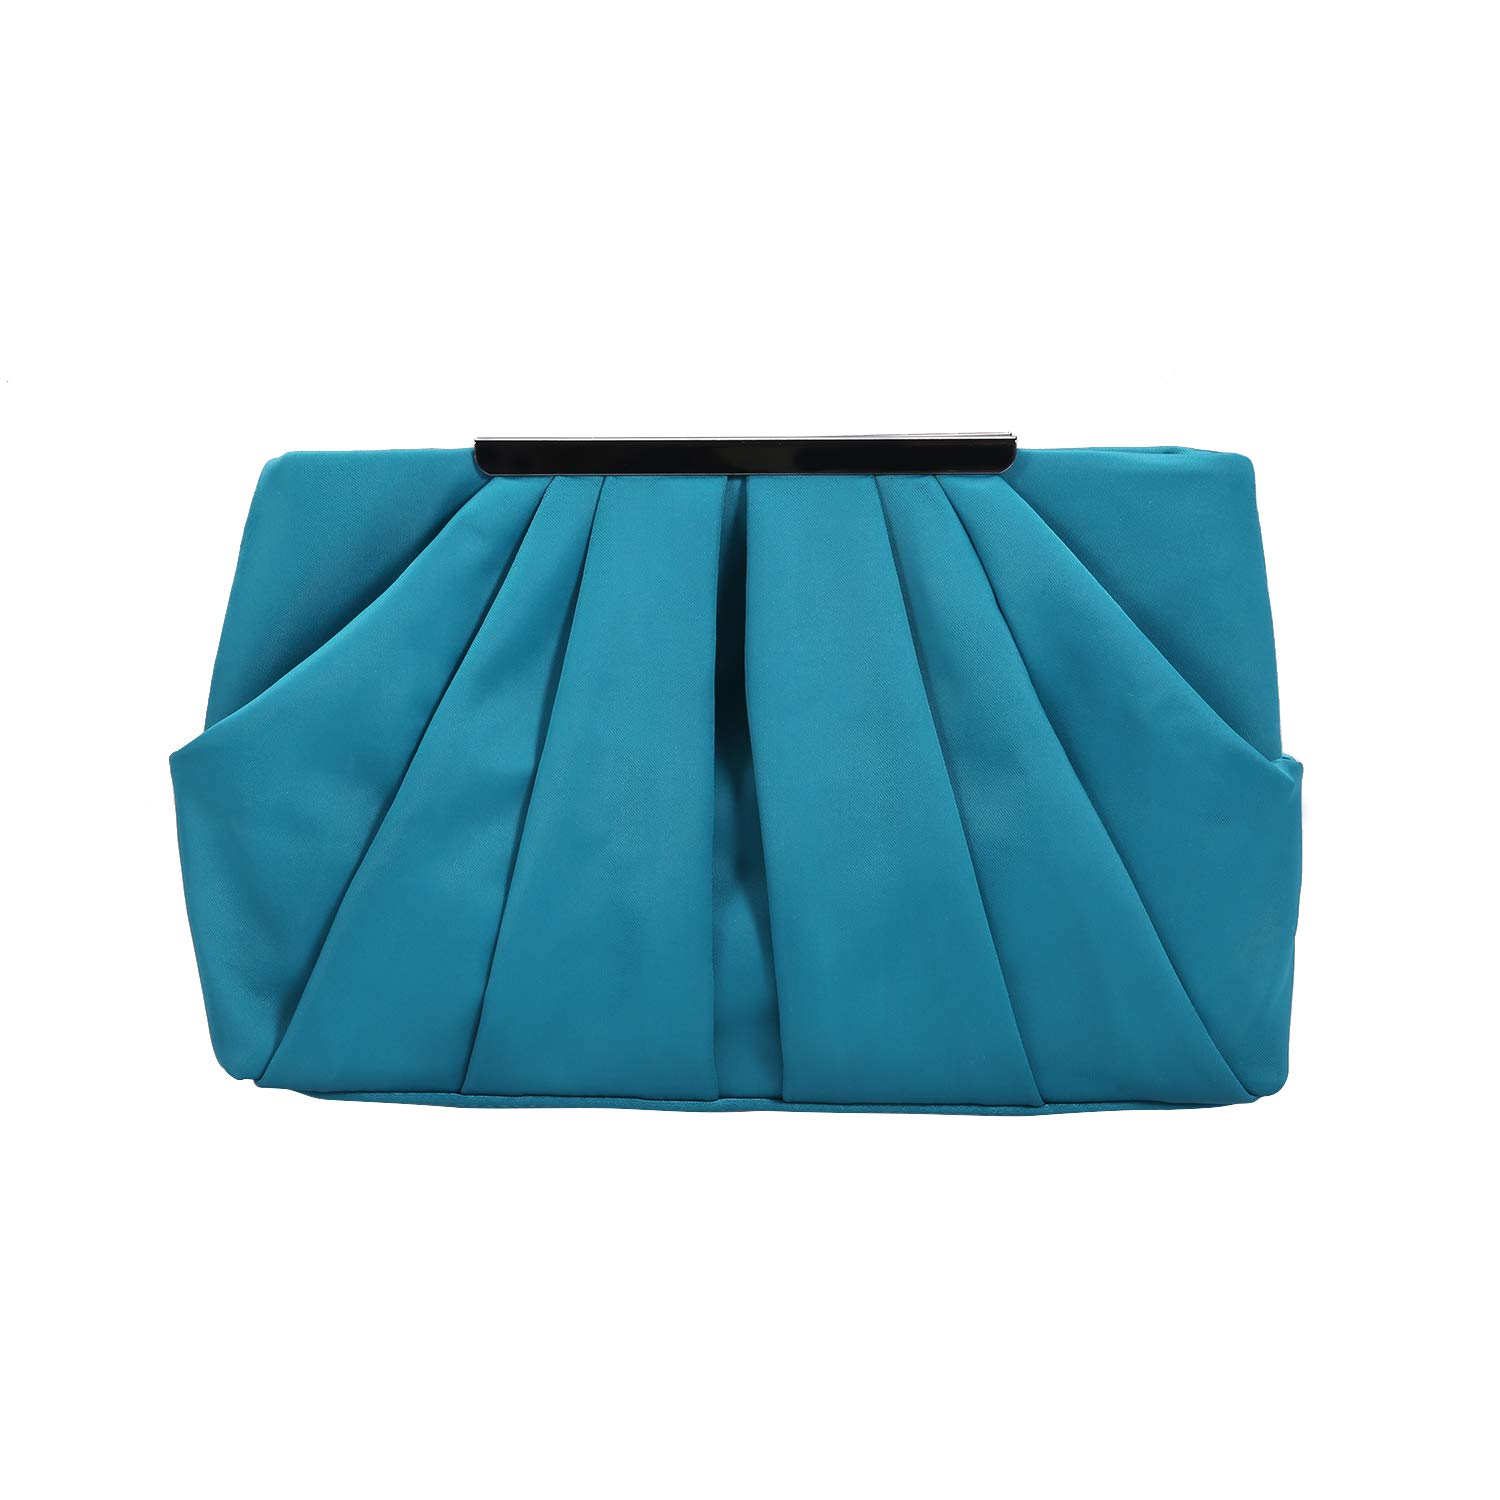 Womens Pleated Satin Evening Handbag Clutch With Detachable Chain Strap Wedding Cocktail Party Bag (Teal Green)